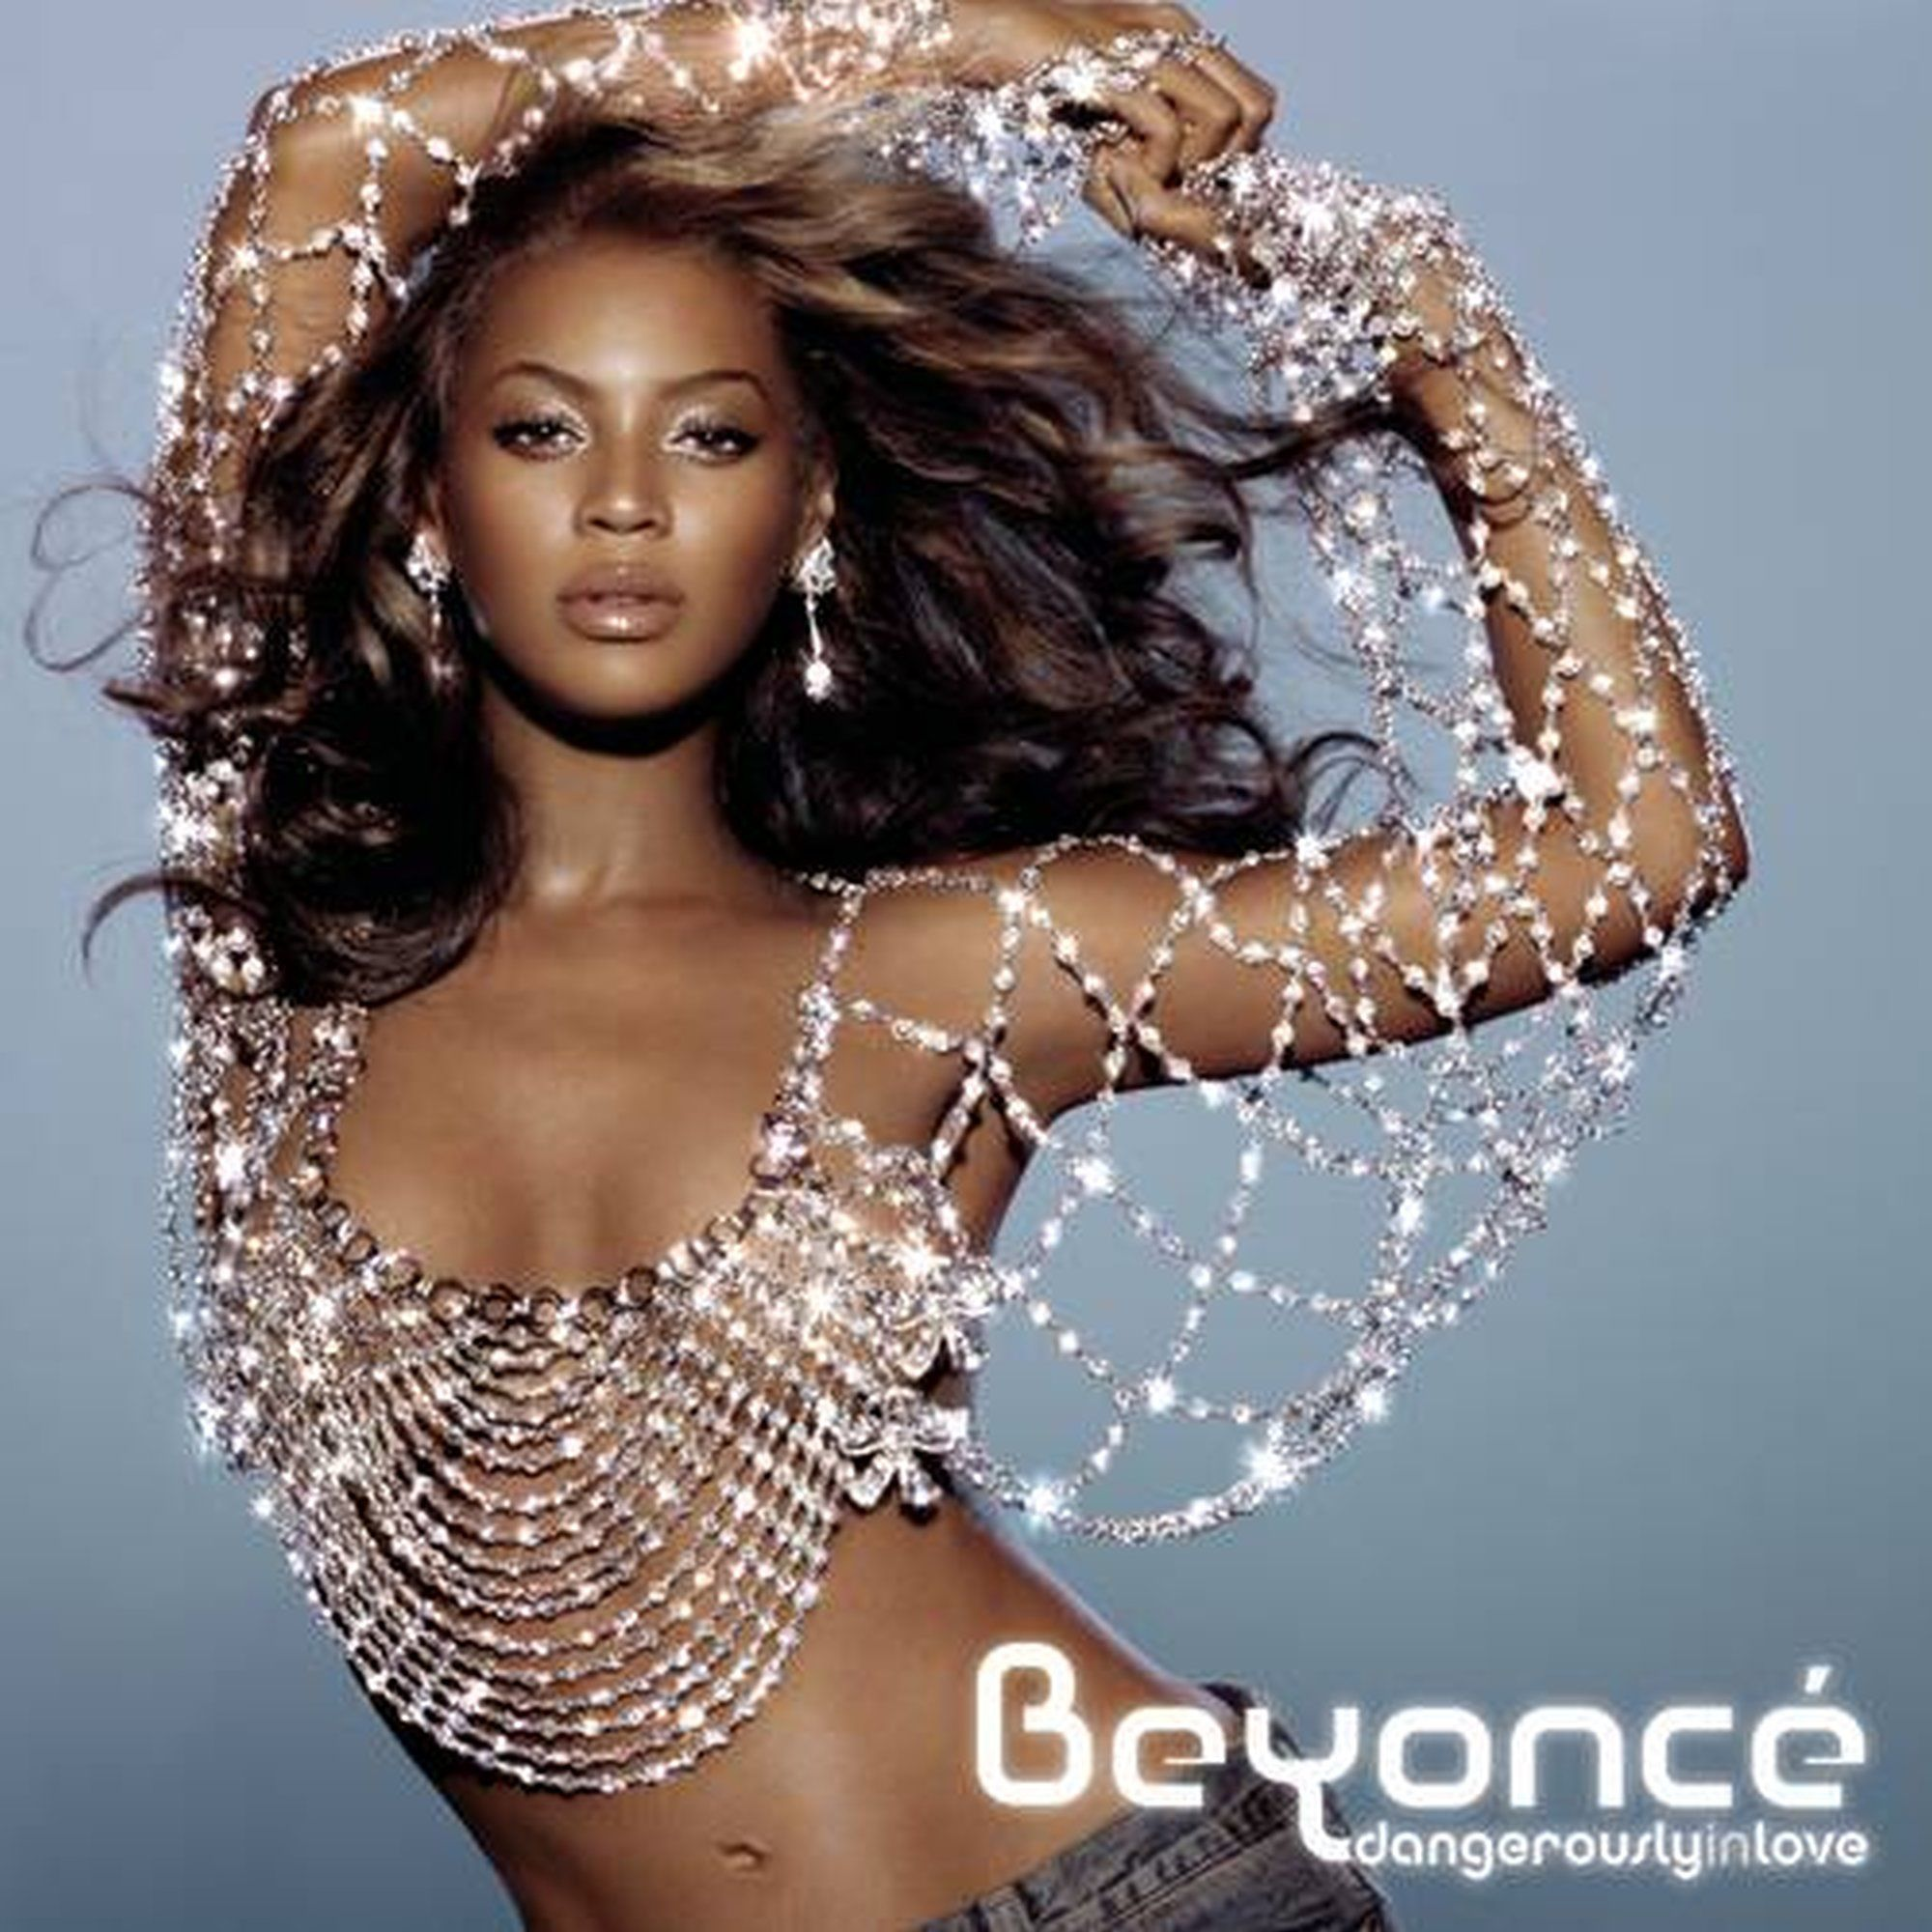 Beyoncé - Dangerously In Love album cover